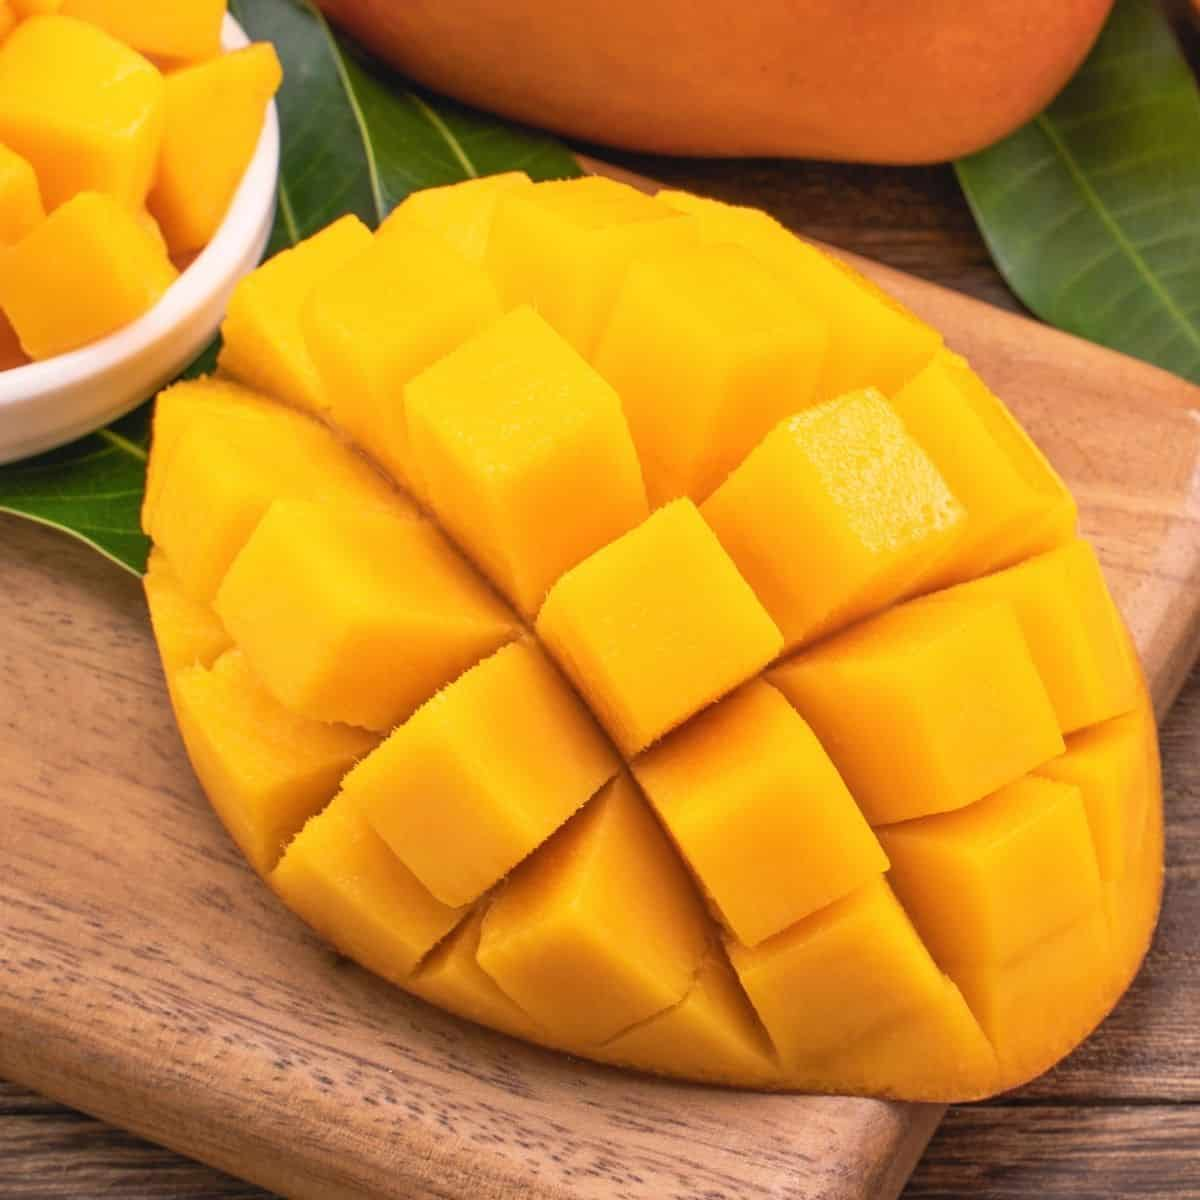 Mango on a cutting board sliced into a grid pattern to form cubes